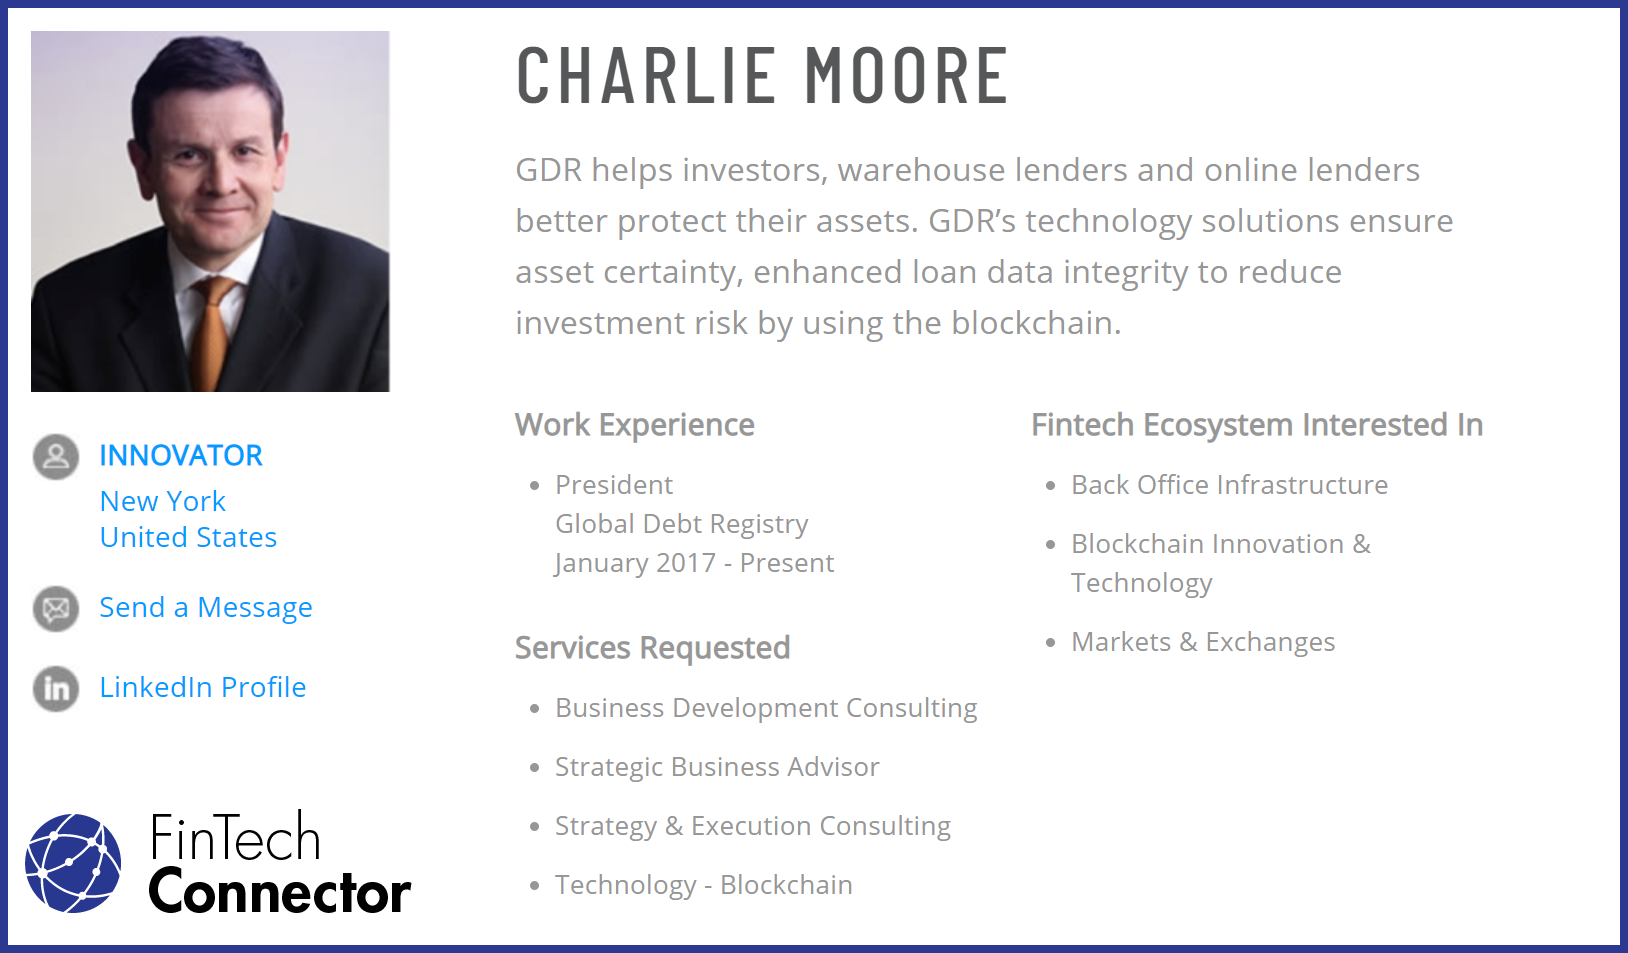 Connect with Charlie Moore via FinTech Connector